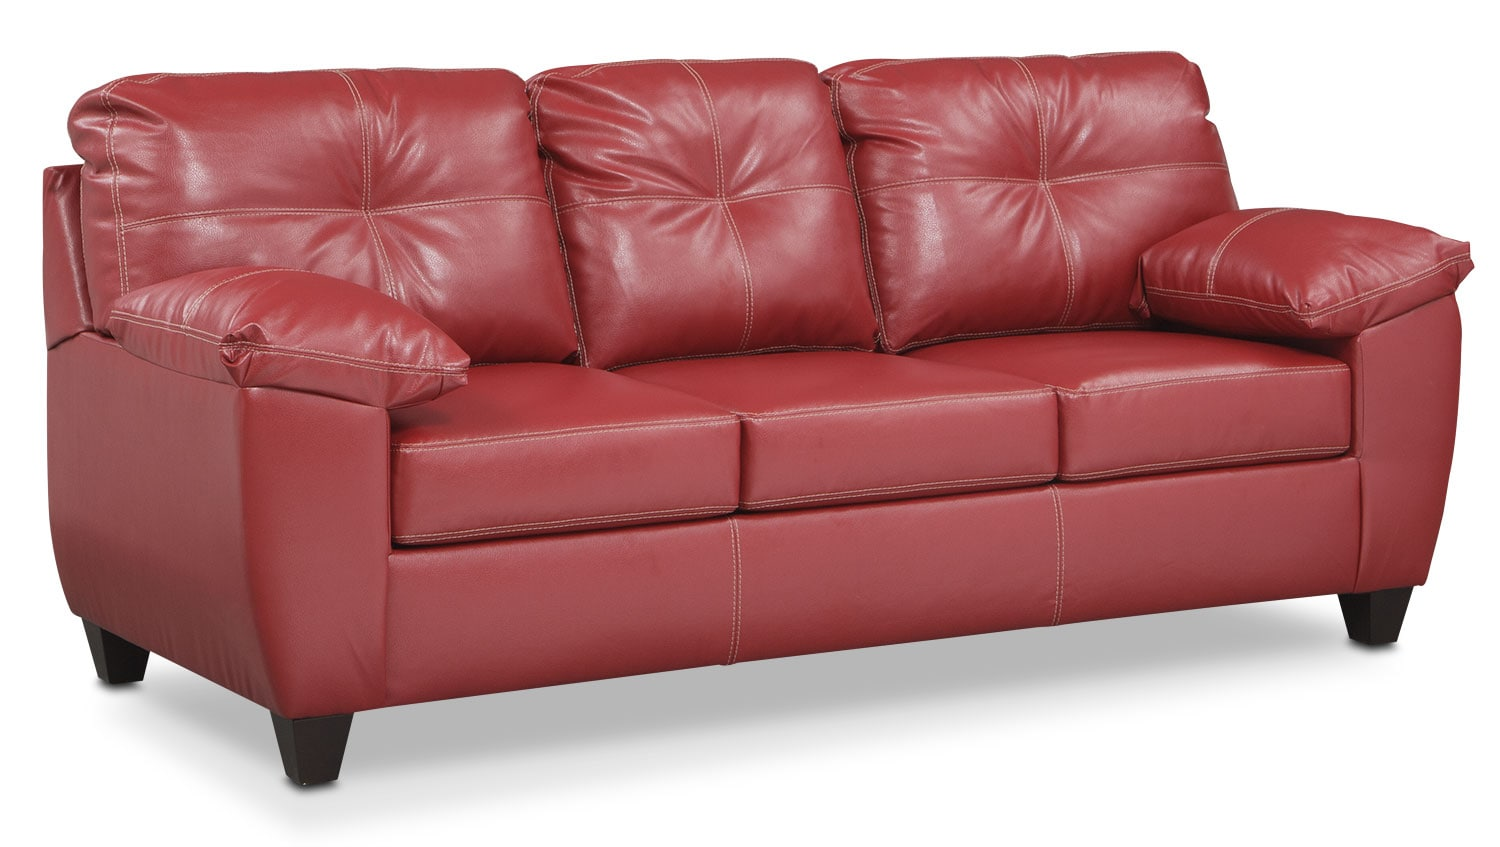 Ricardo Queen Innerspring Sleeper Sofa   Cardinal